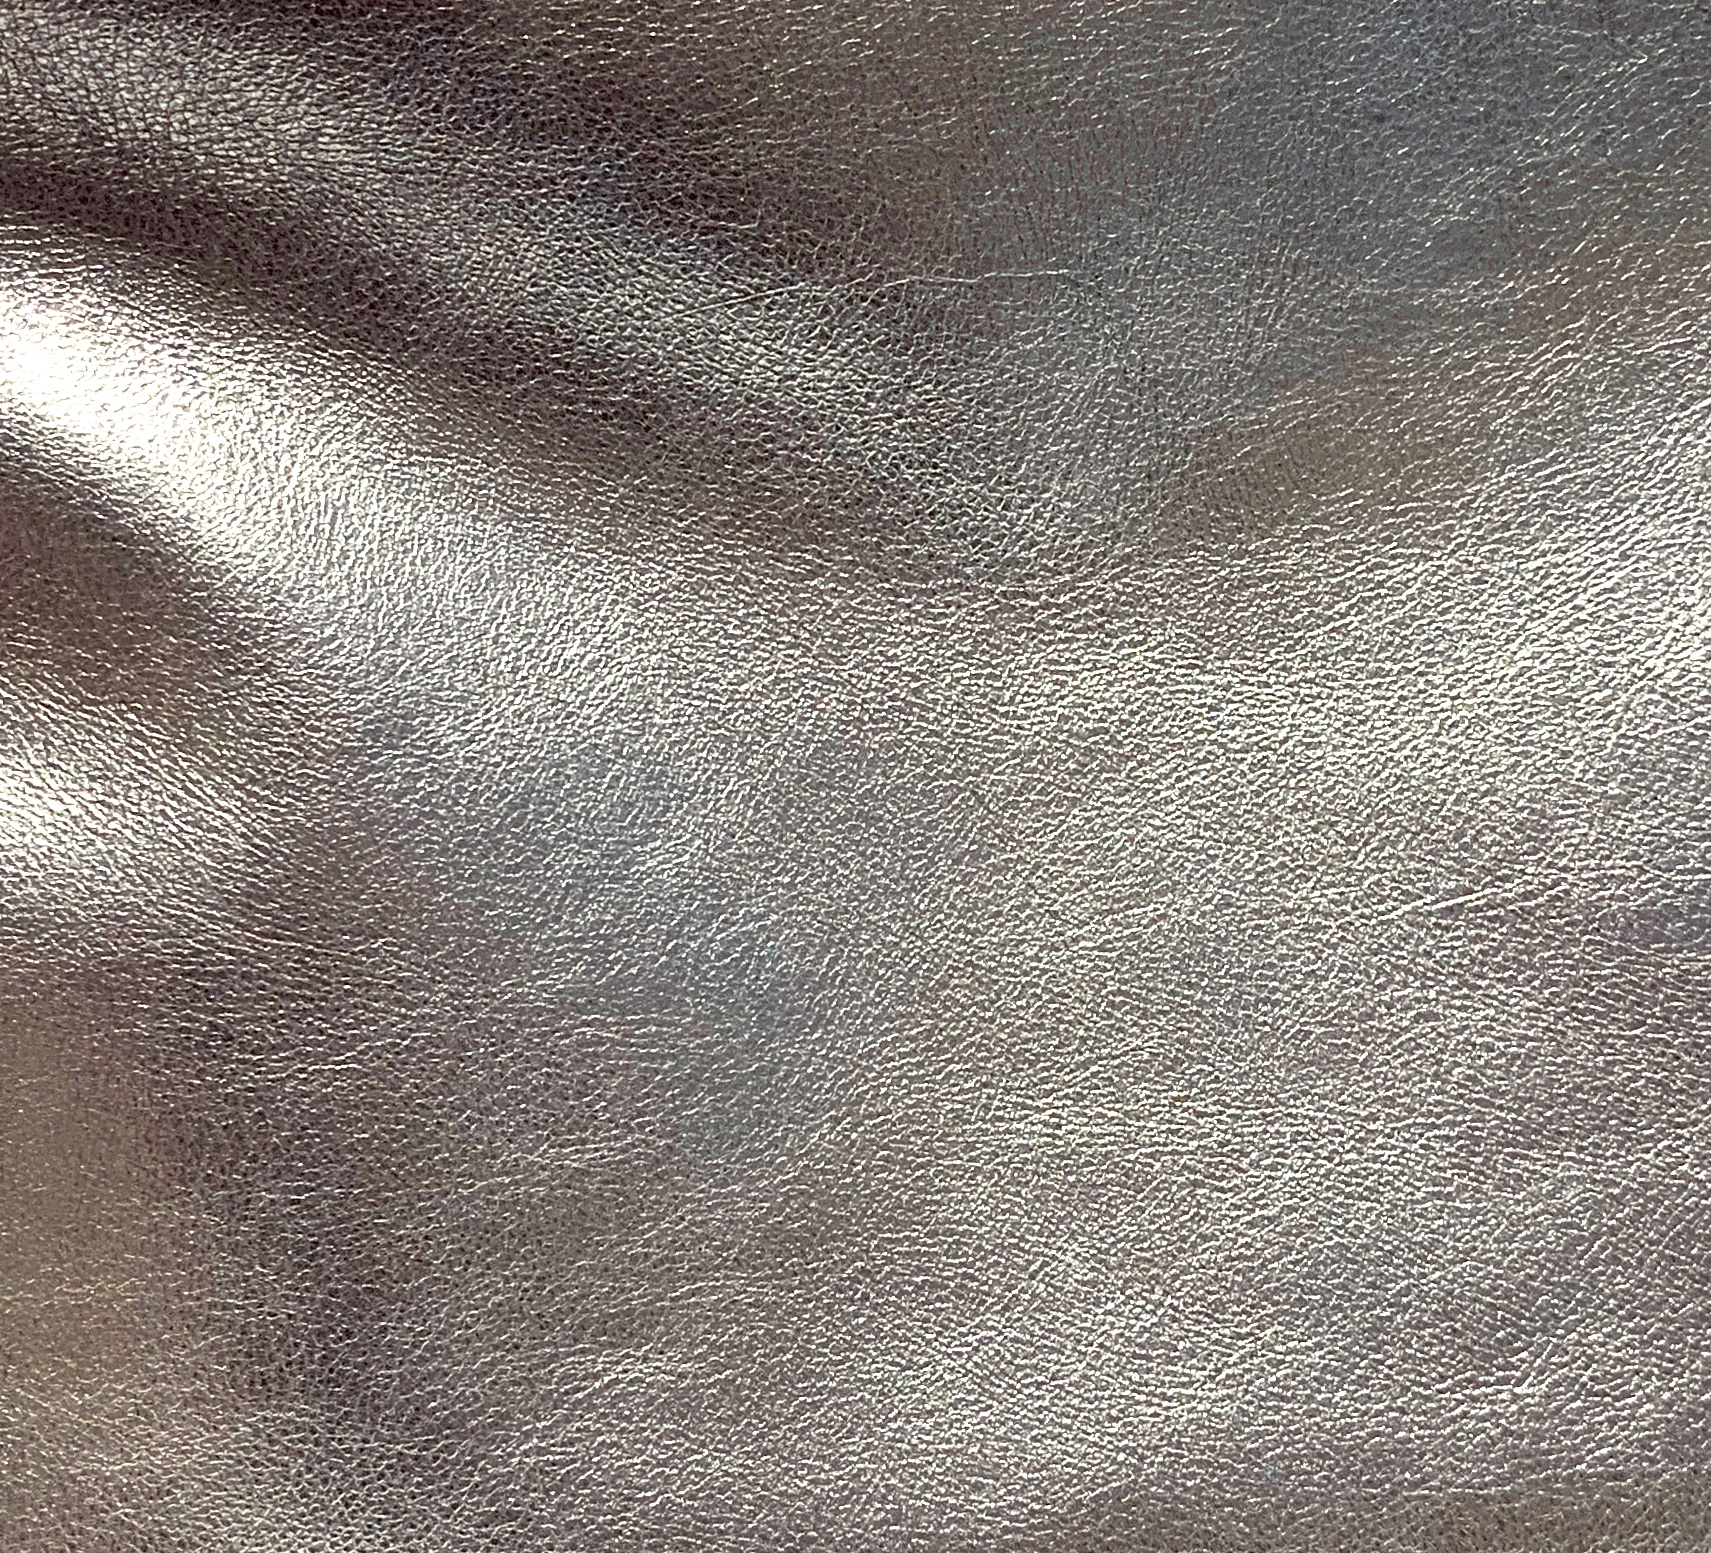 METALLIC PEWTER LEATHER